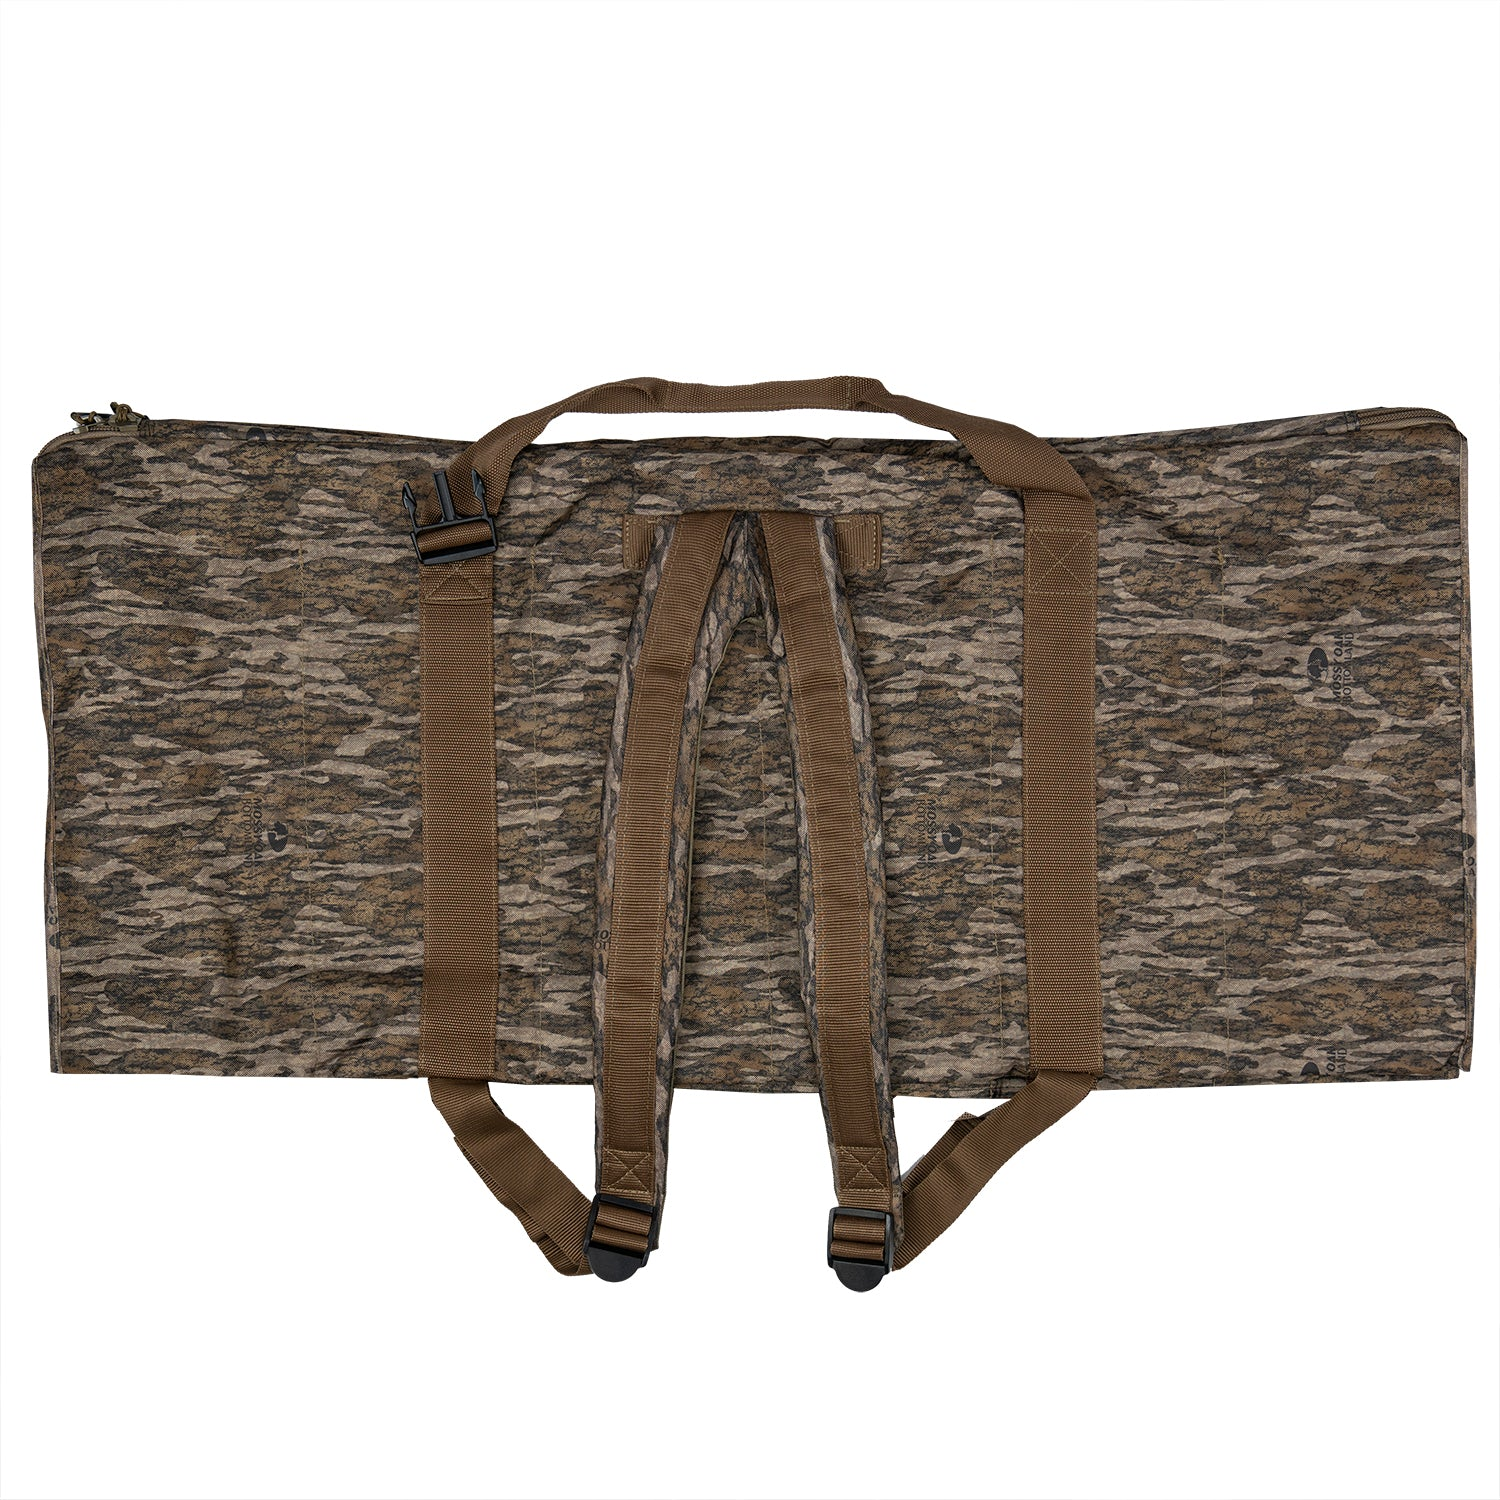 Deluxe 12 Slot Duck Decoy Bag – Bottomland